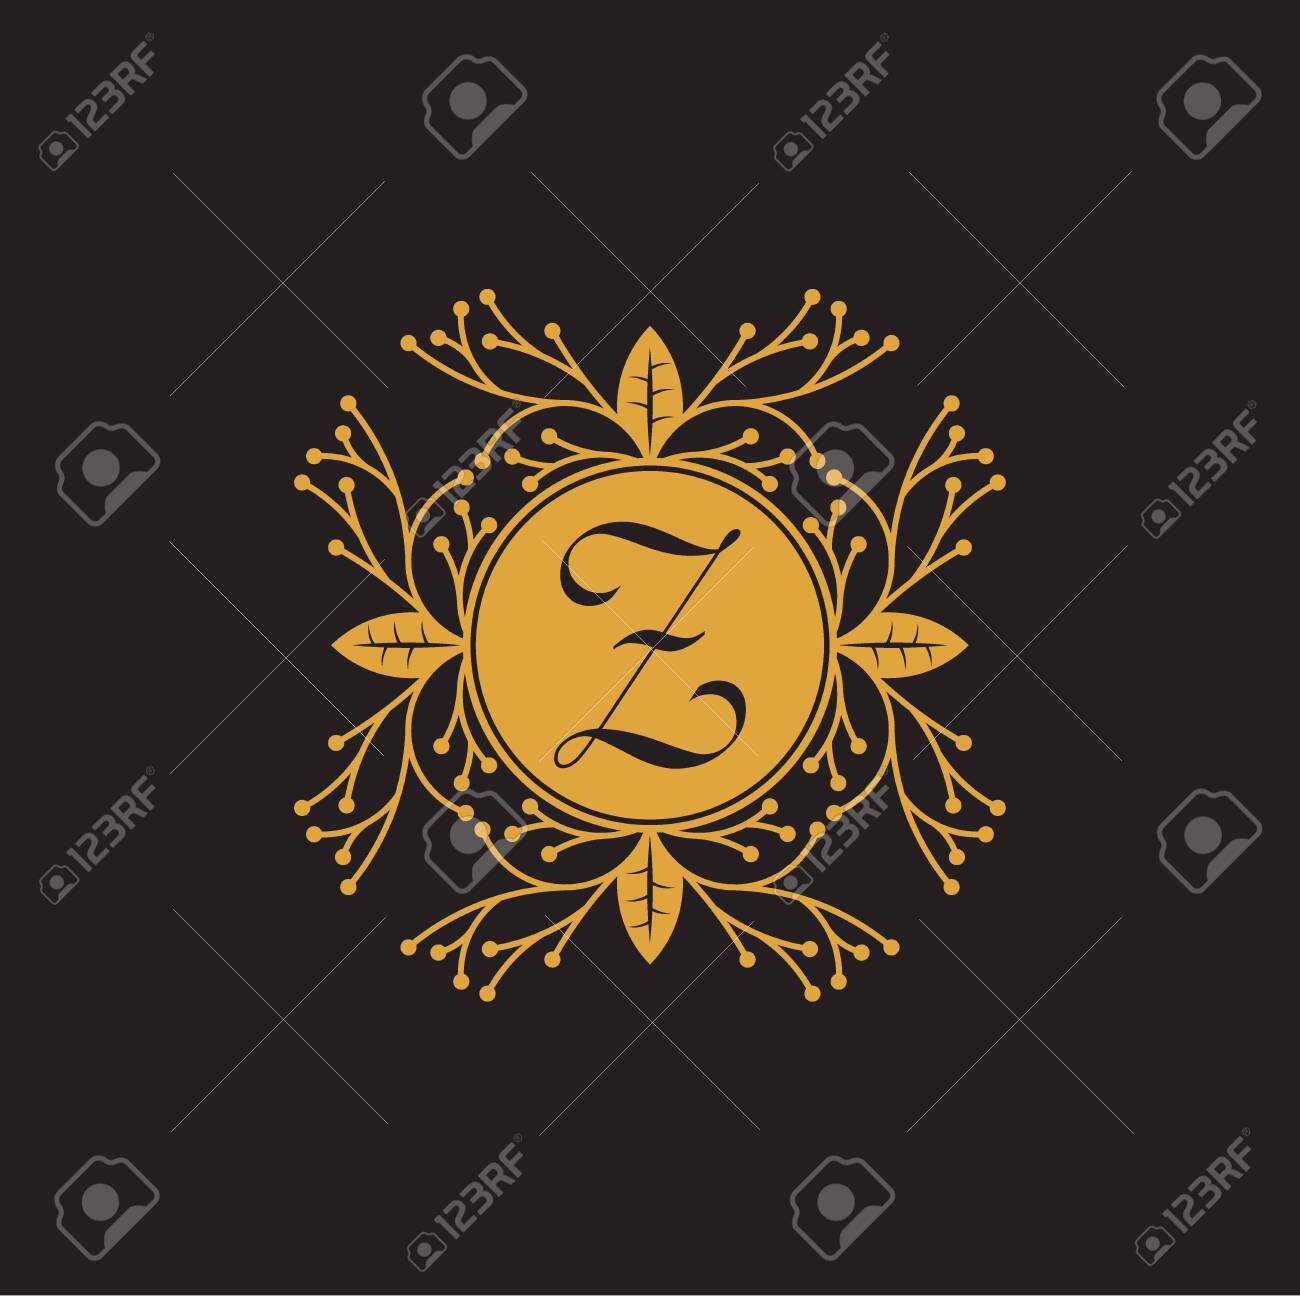 Initial Letter z, Luxury Logo for boutique, cosmetic, or jewelery logo design. Vector Illustration - 144490008